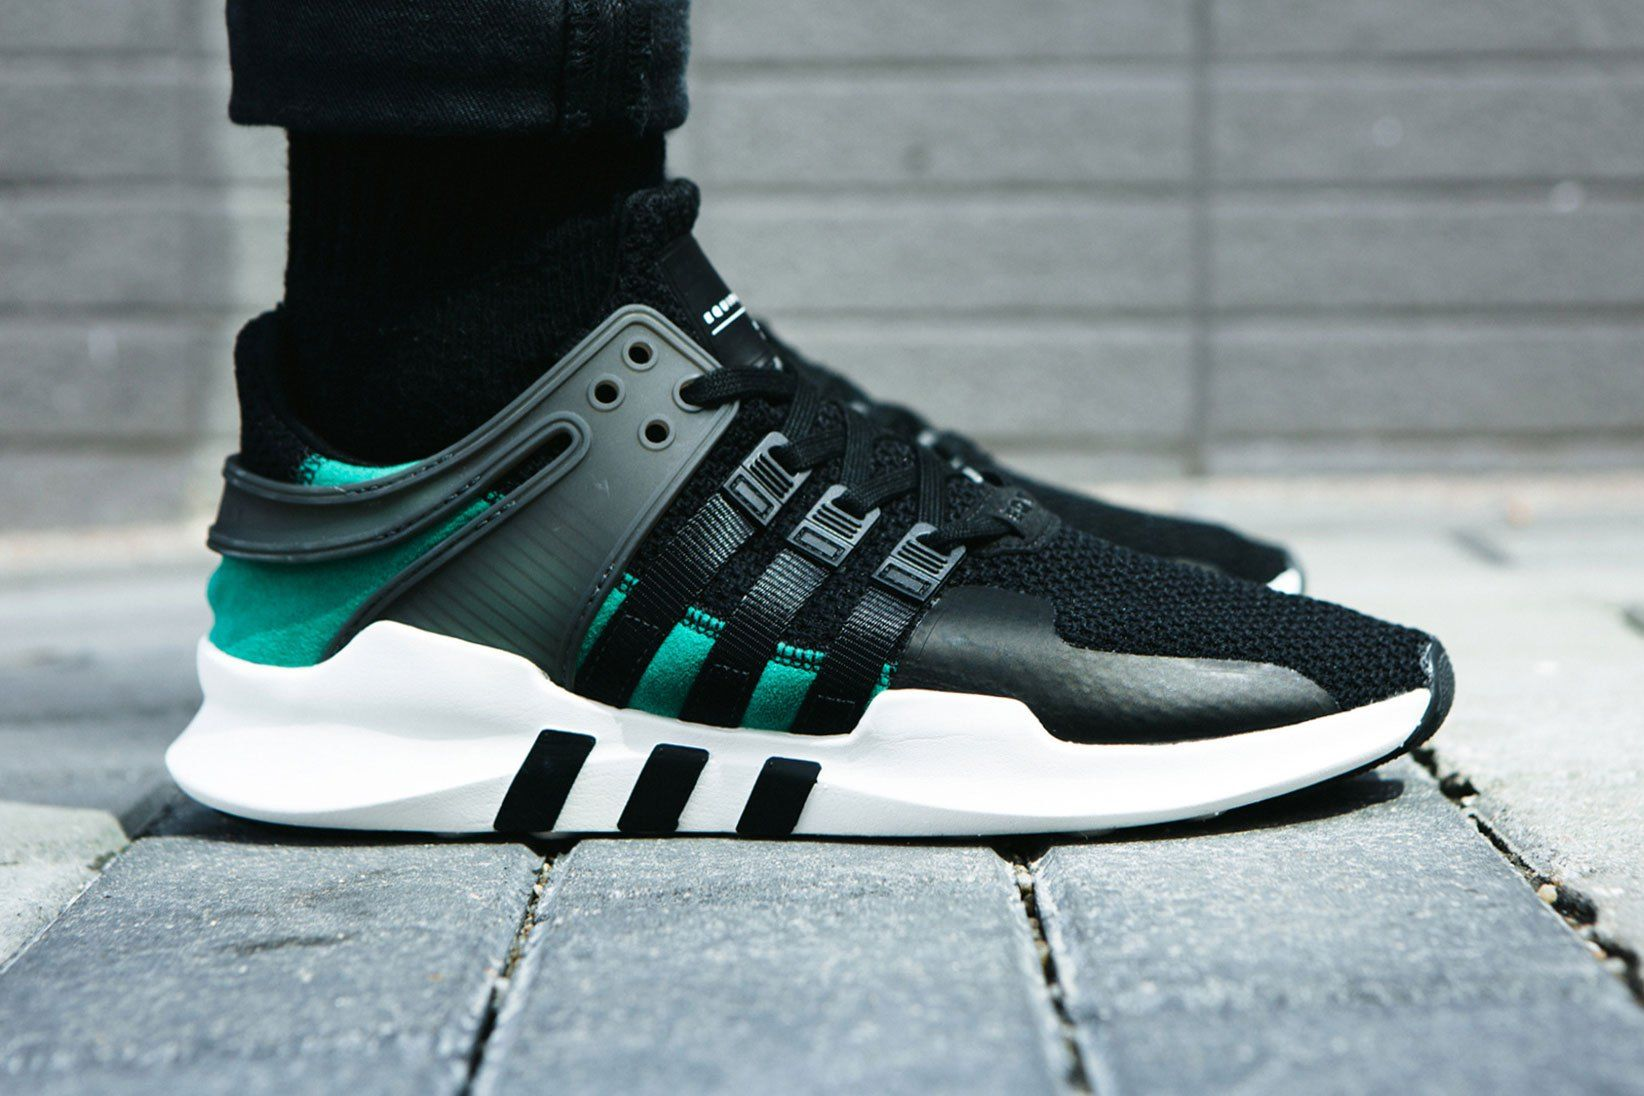 Adidas Equipment Support ADV - Core Black/Sub Green (by worldbox) | shoes |  Pinterest | Adidas, Adidas shoes and Logo adidas